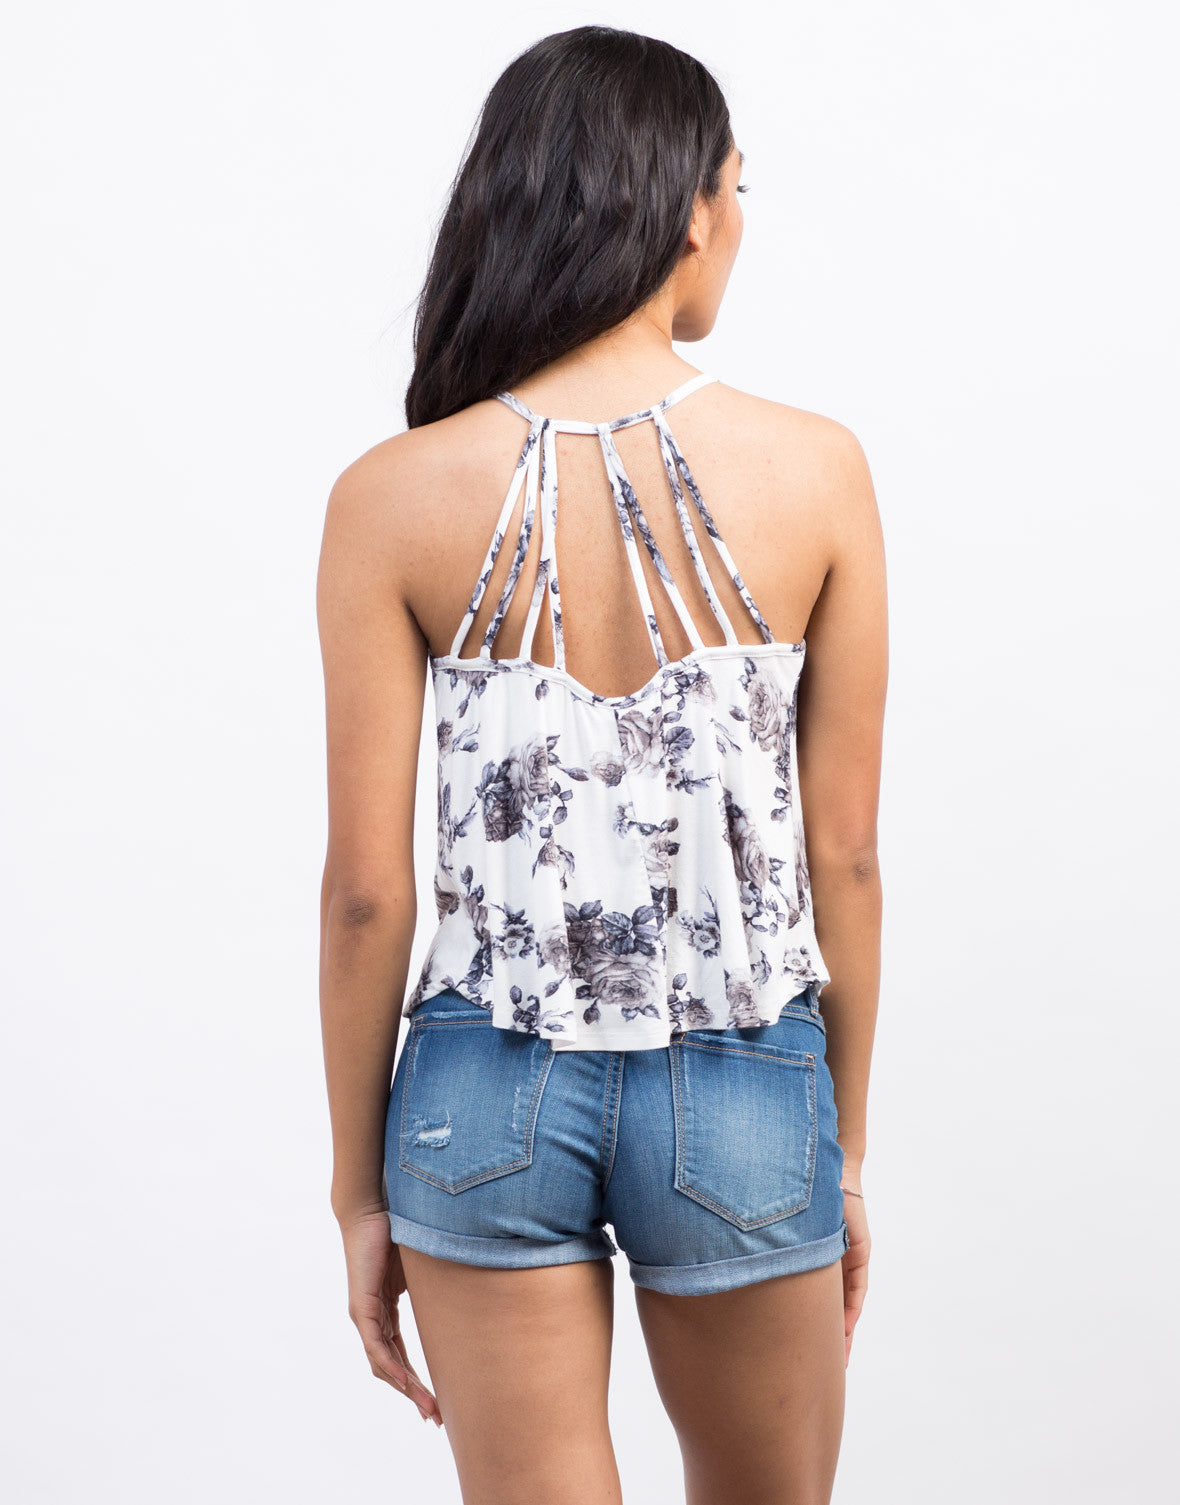 Back View of Vintage Floral Cami Tank